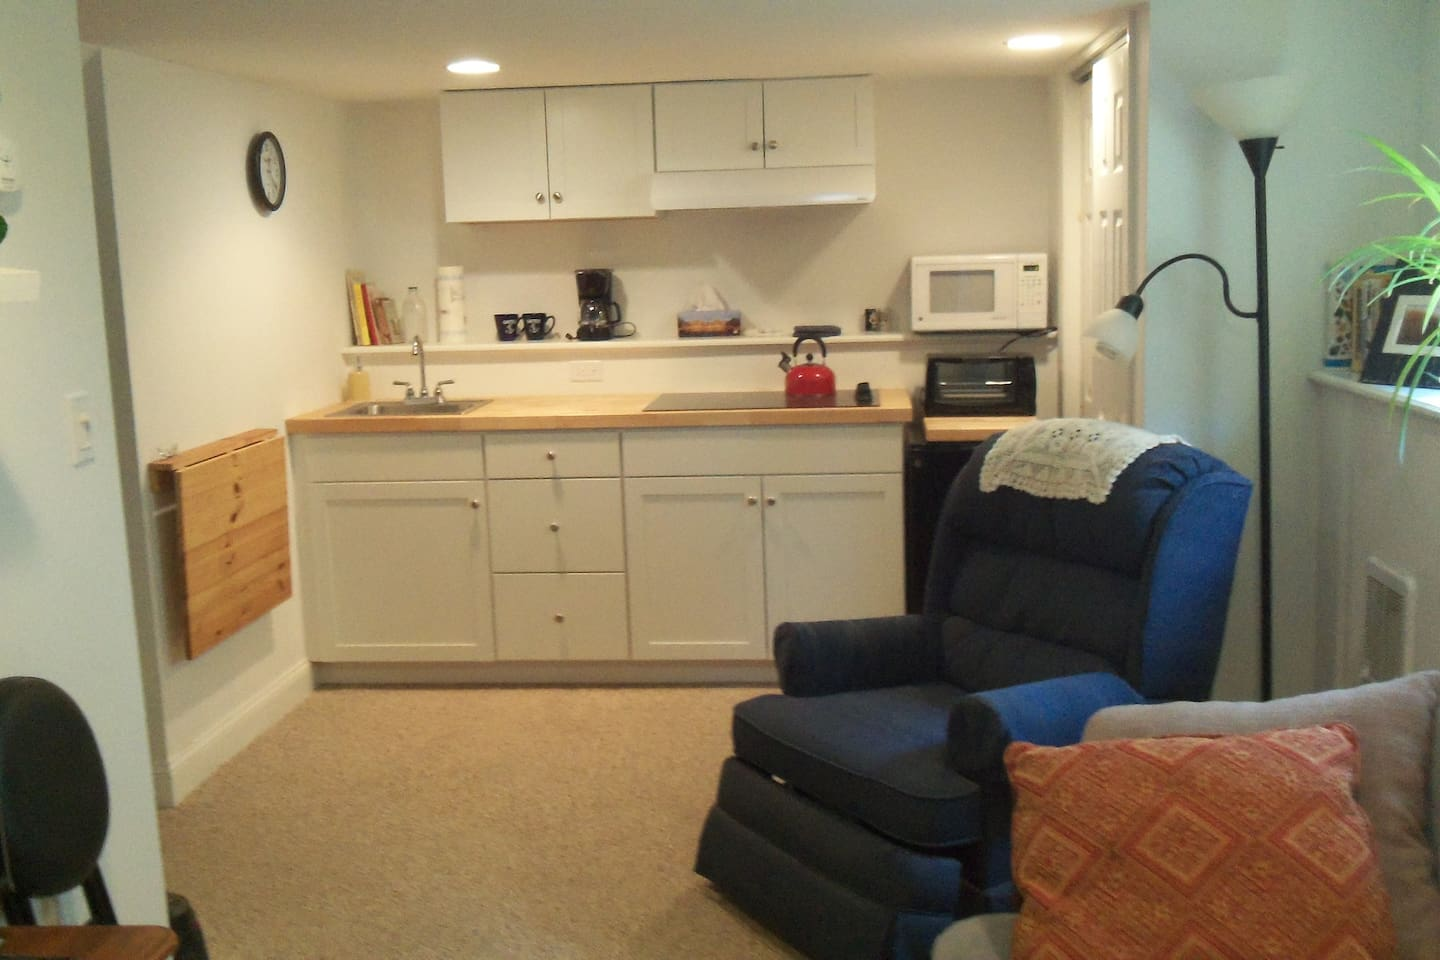 One bedroom in-law apartment with private entrance.